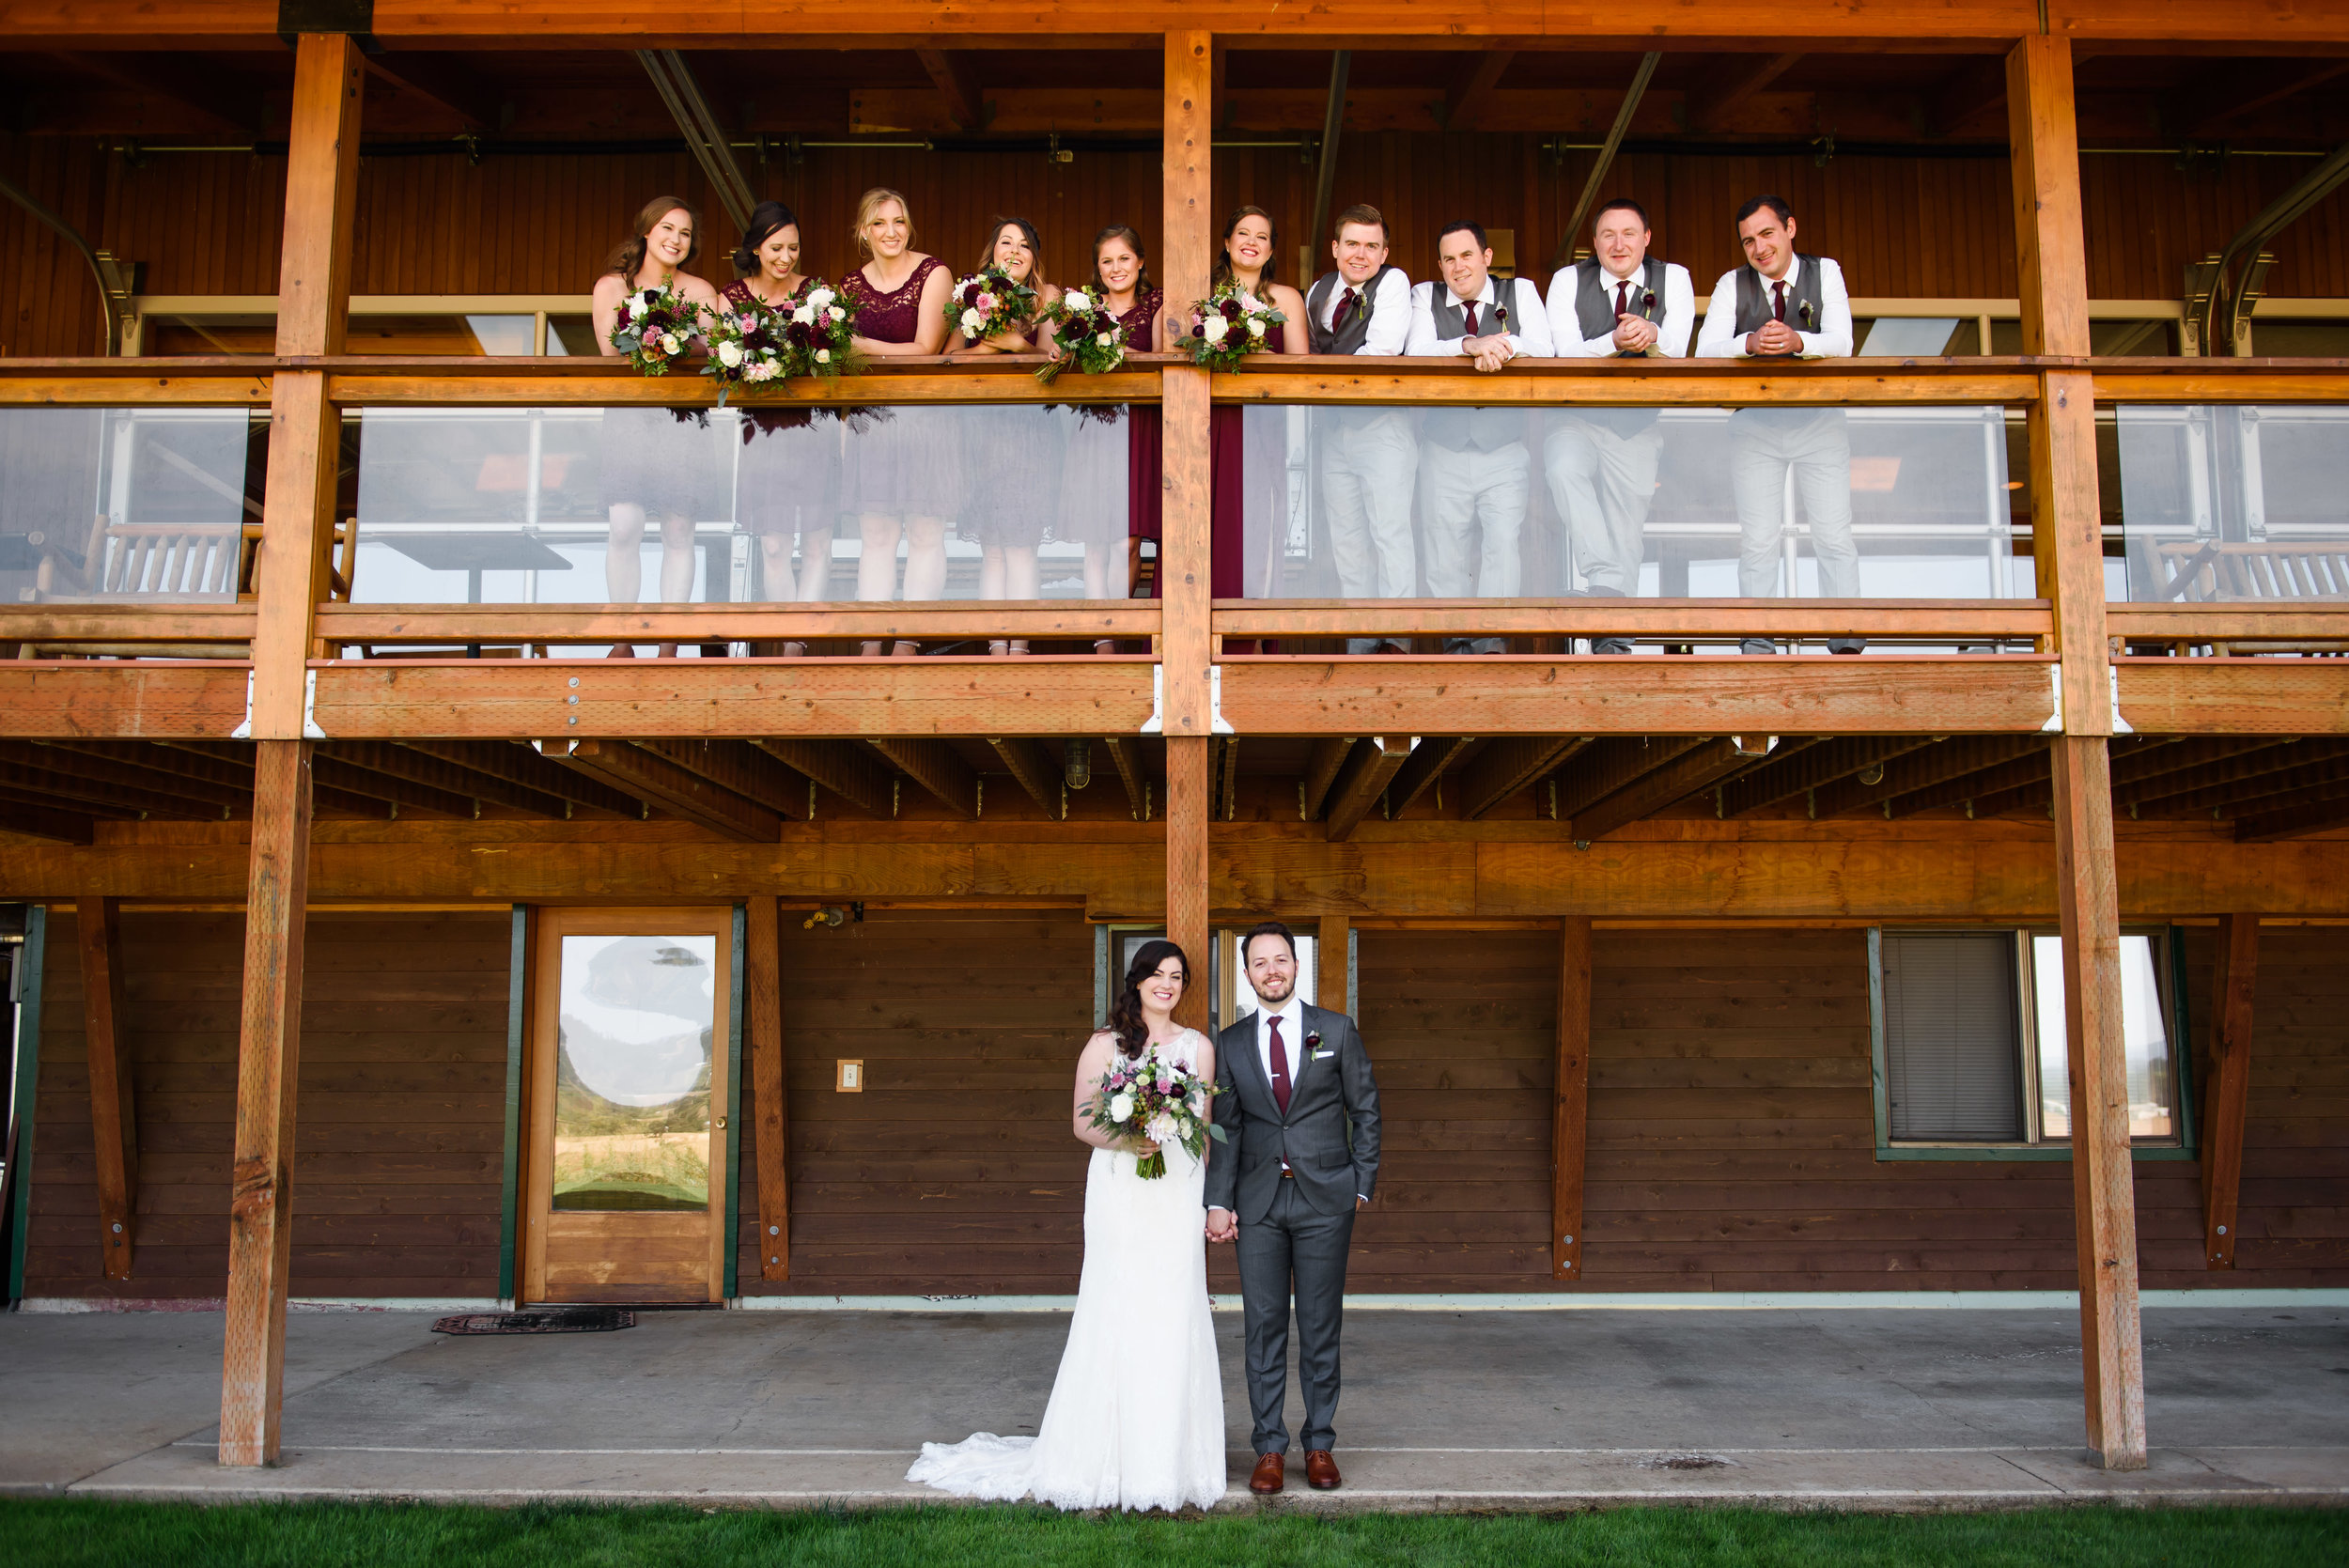 Bridalbliss.com | Portland Wedding | Oregon Event Planning and Design |  Honeysuckle Photography